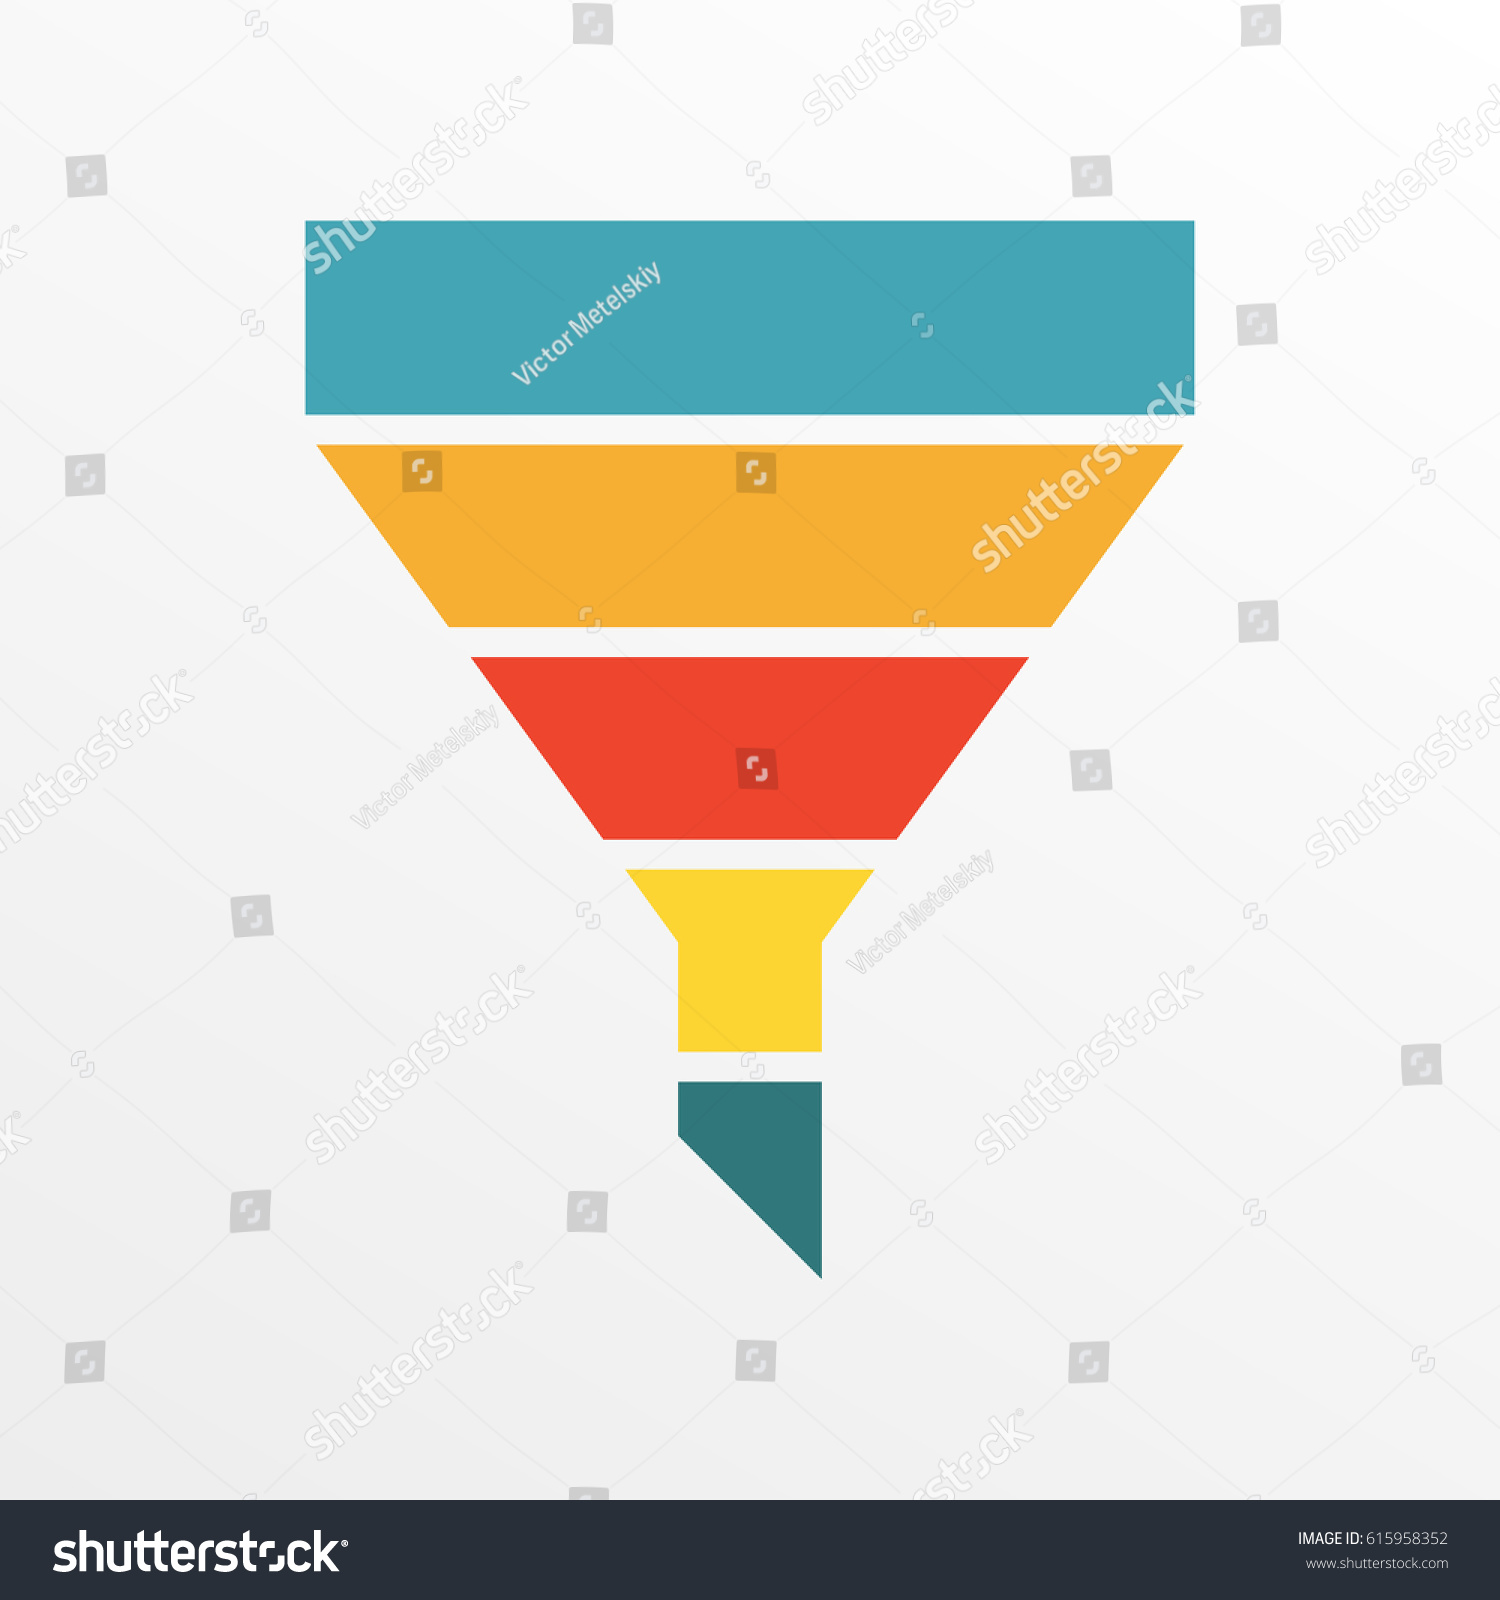 Sales funnel template powerpoint free download gallery templates funnel template powerpoint images templates example free download powerpoint funnel template images templates example free download alramifo Choice Image